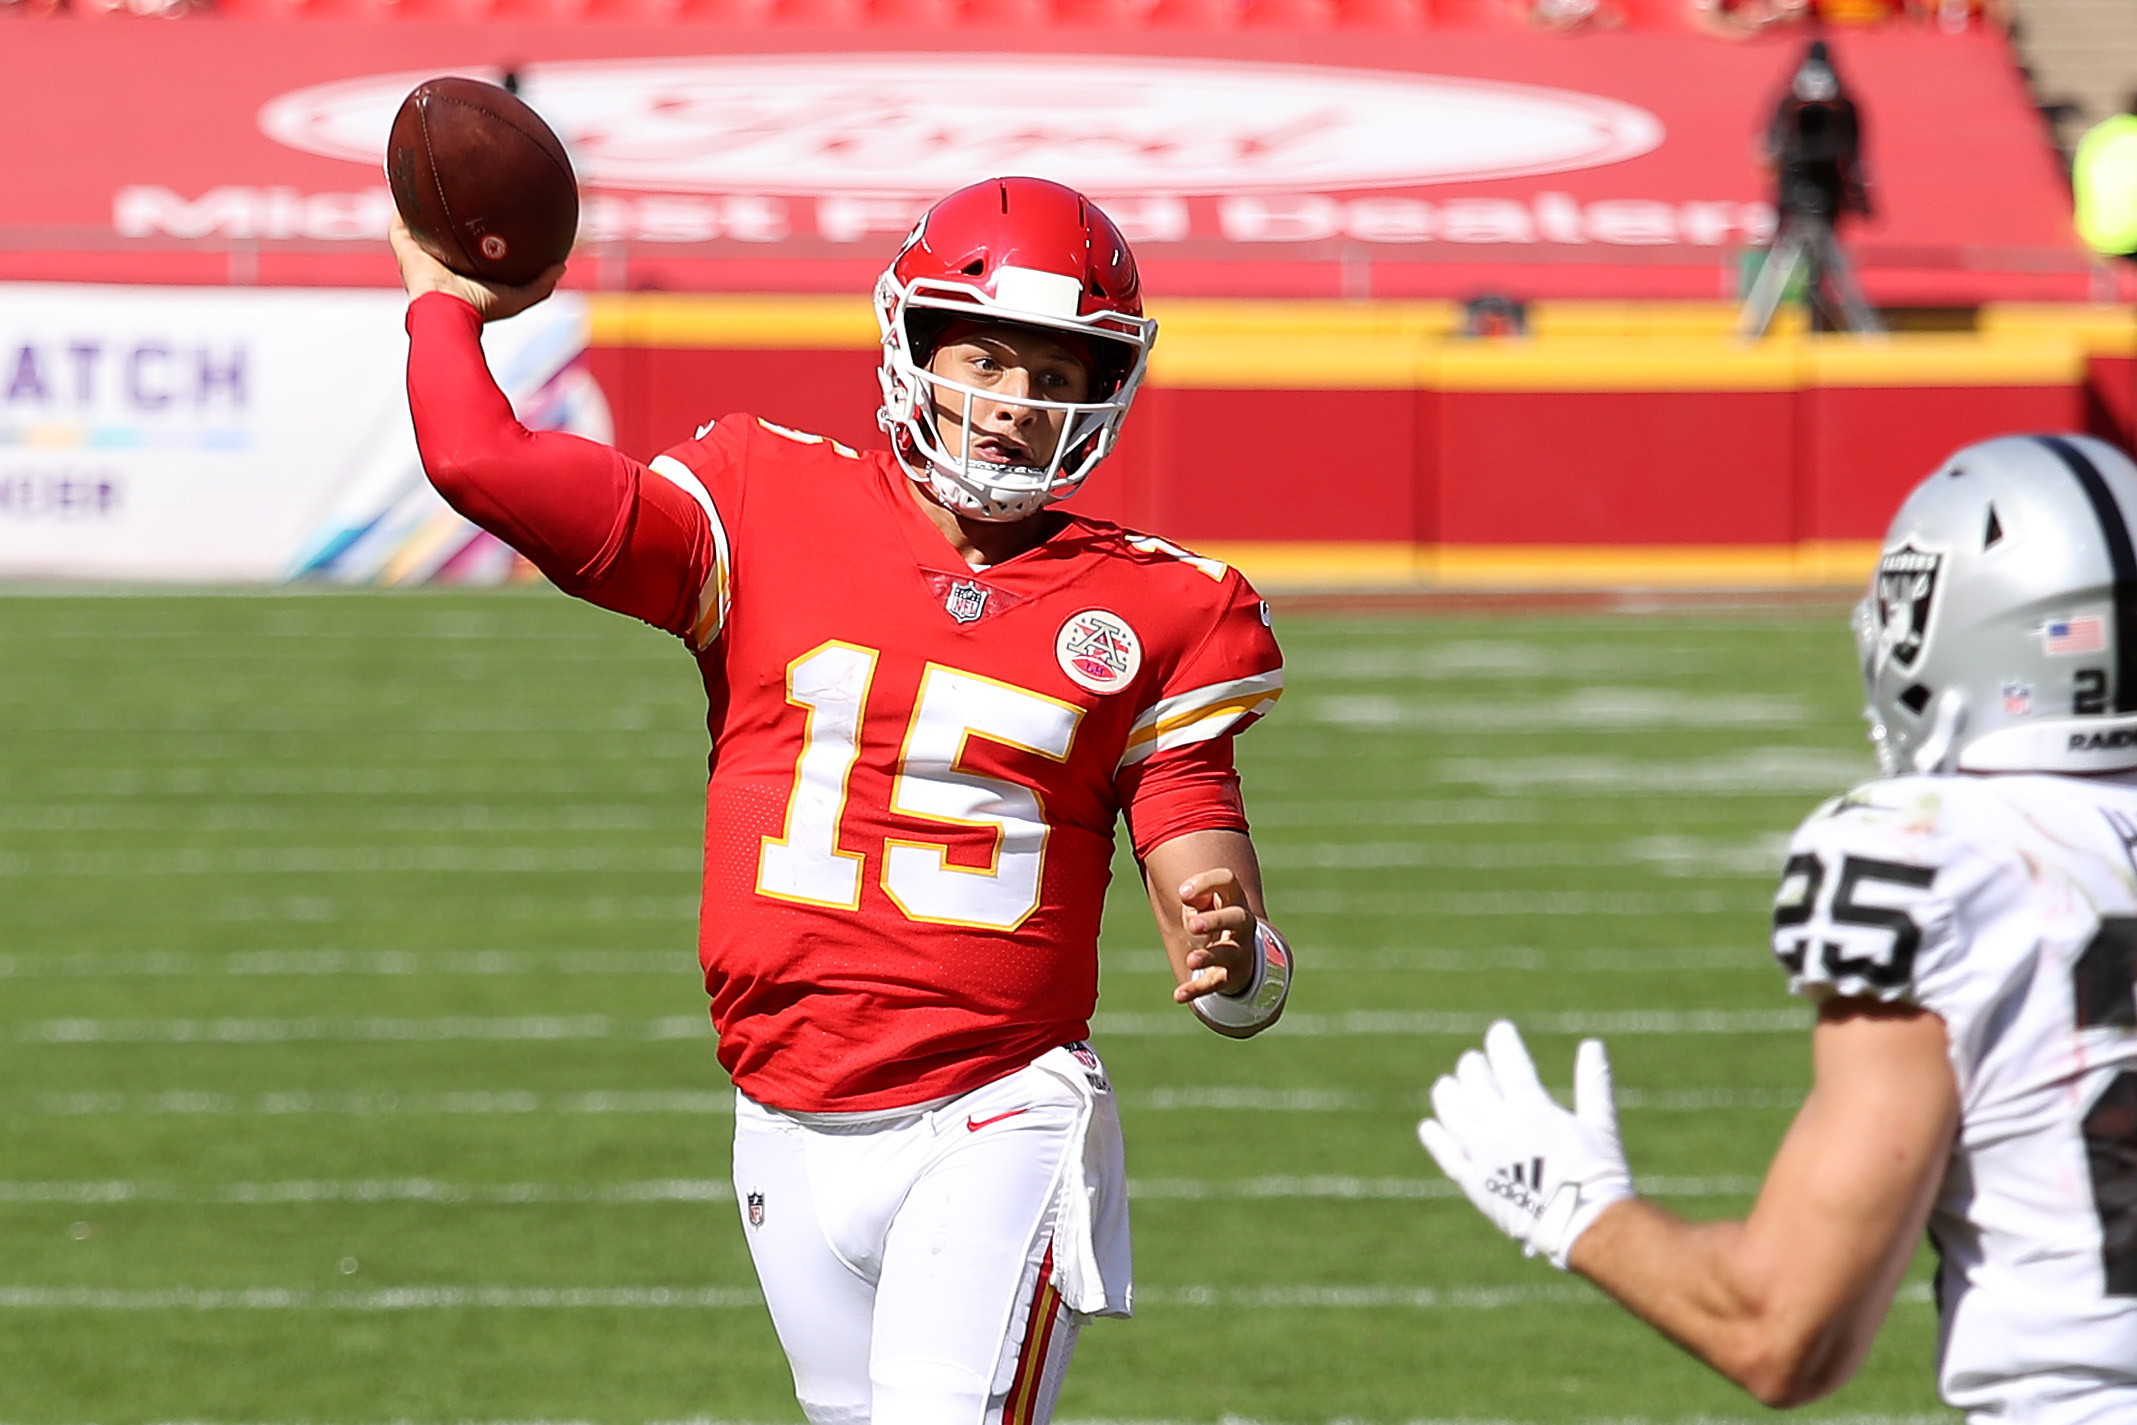 Patrick Mahomes throwing a touchdown pass